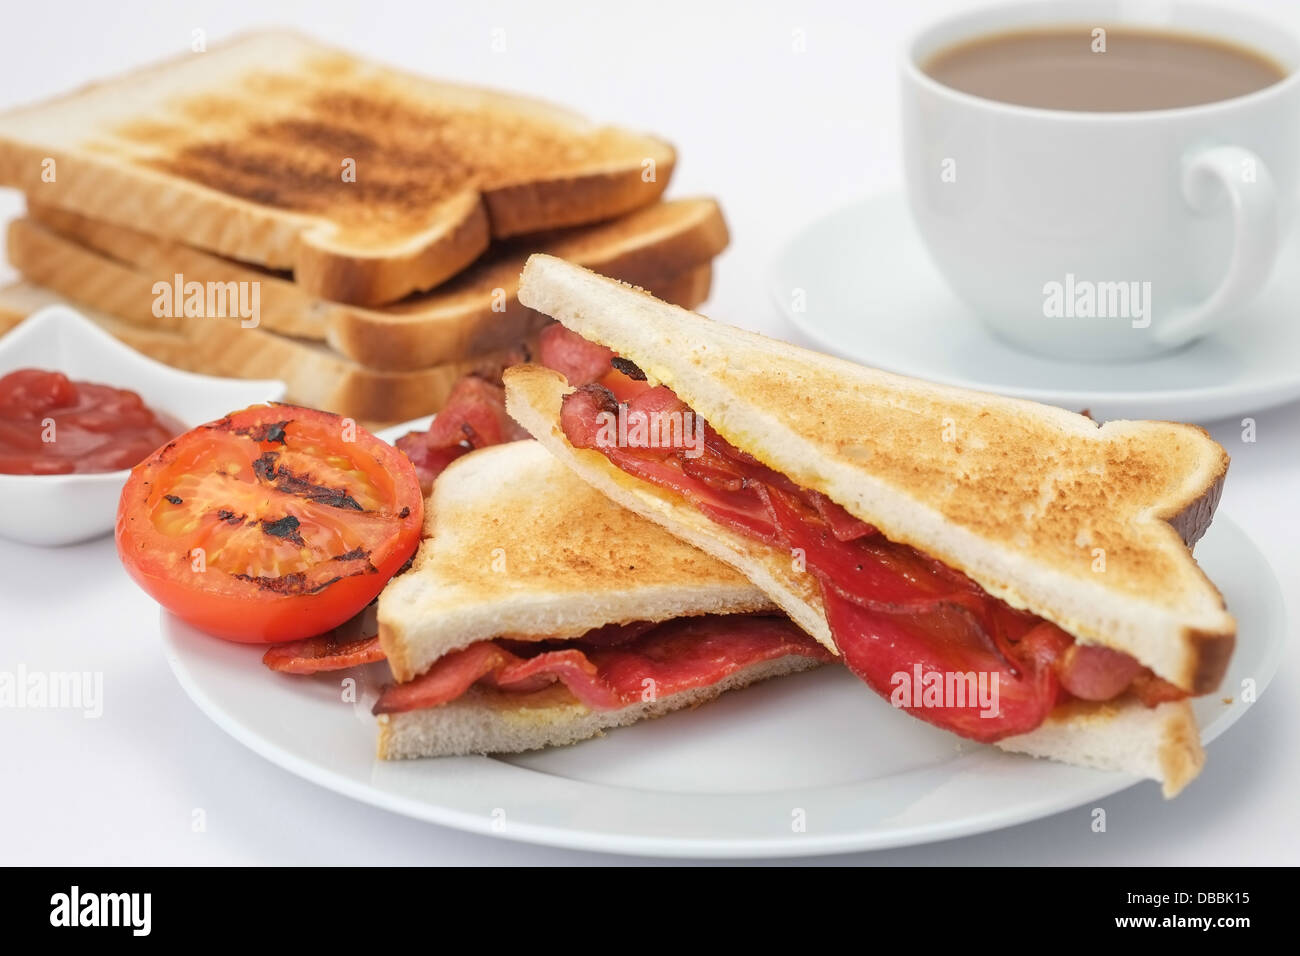 Breakfast Of A Bacon Sandwich With Toast And A Cup Of Coffee Stock ...